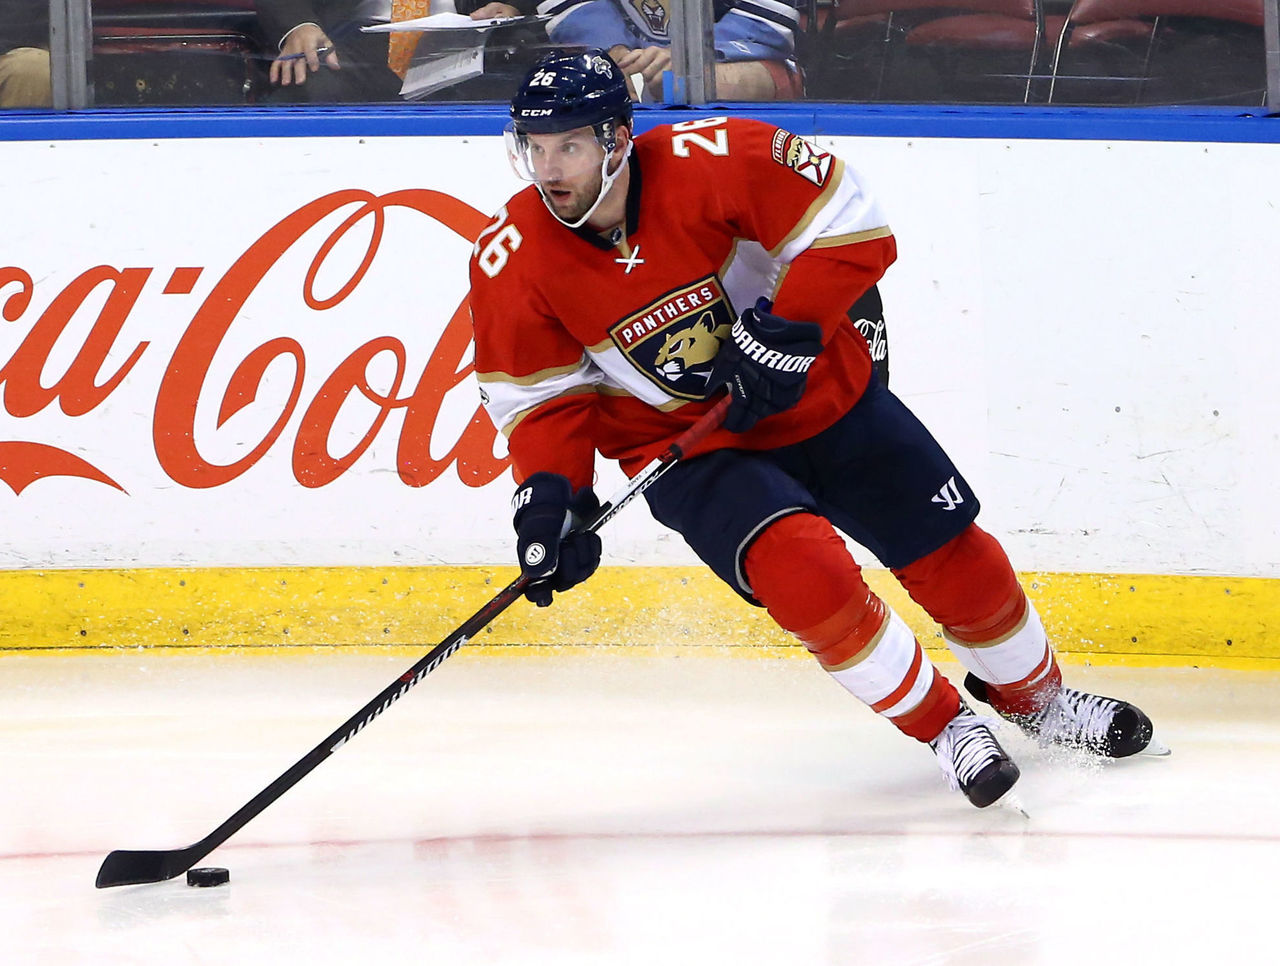 Cropped_2017-03-15t033159z_1438963080_nocid_rtrmadp_3_nhl-toronto-maple-leafs-at-florida-panthers